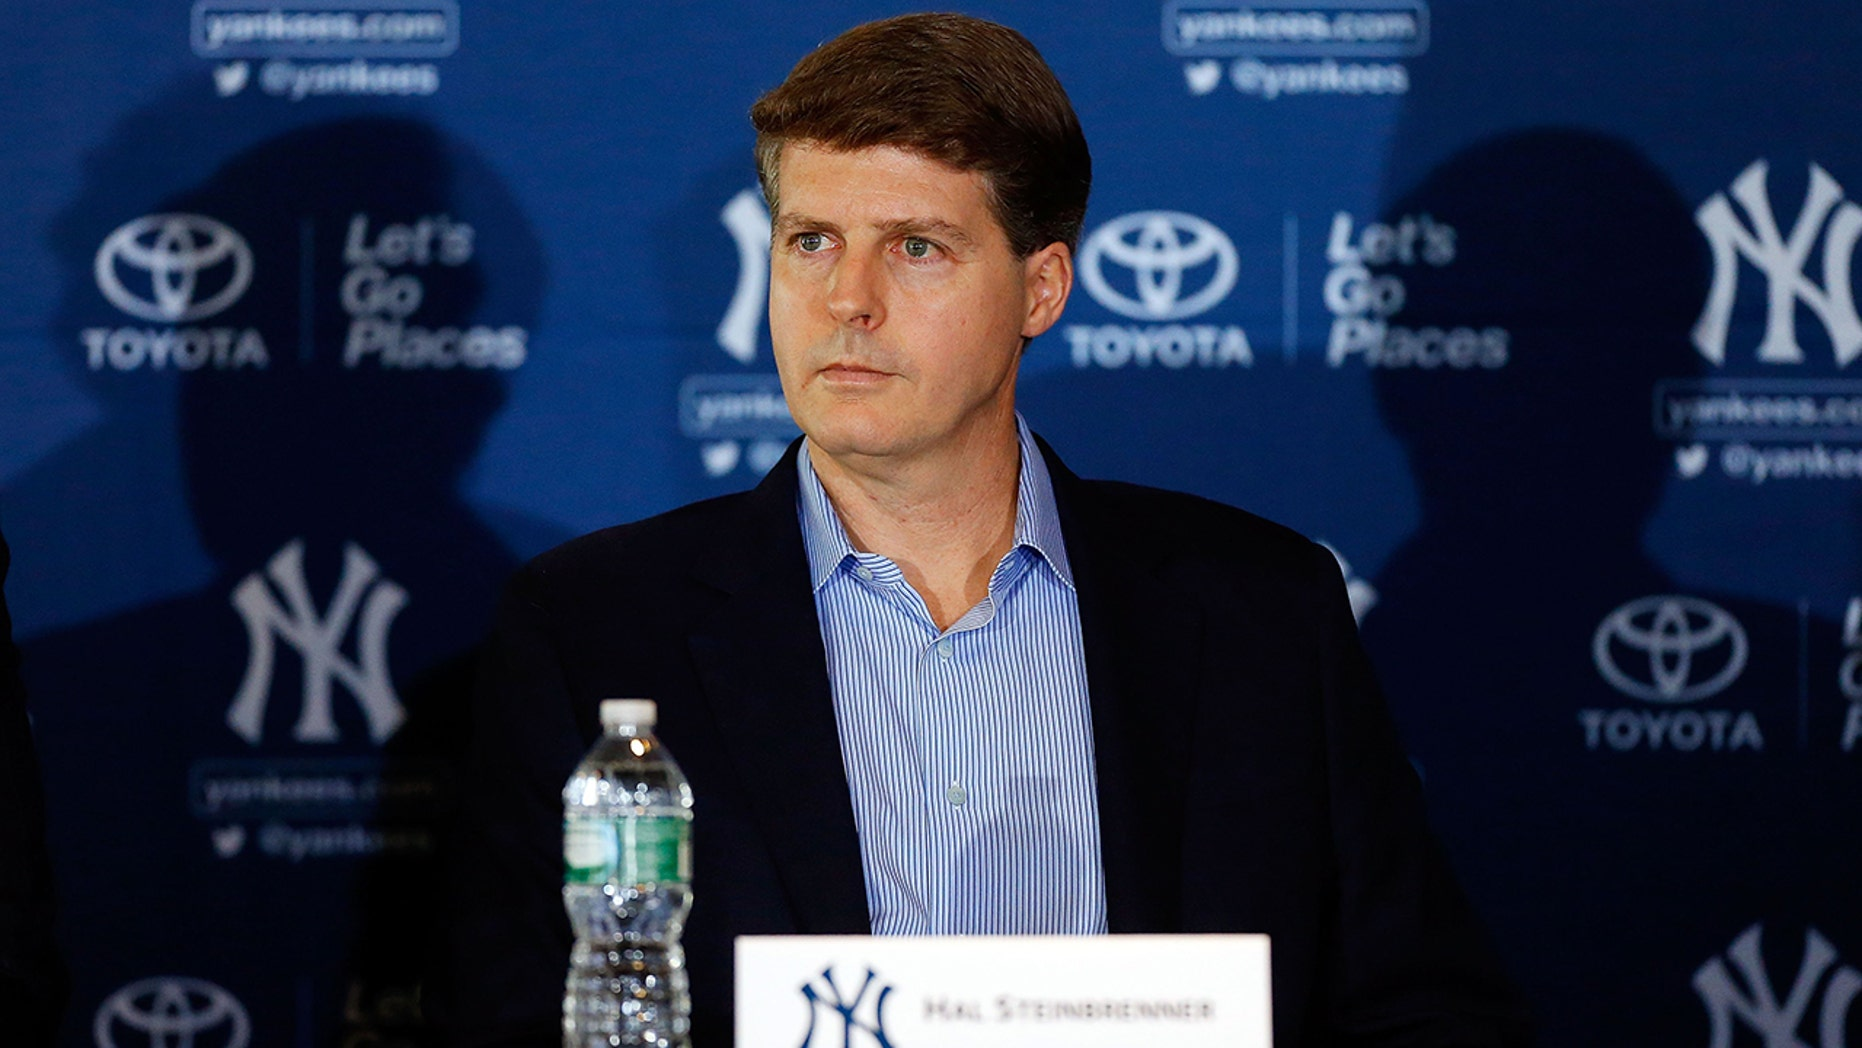 Yankees owner Hal Steinbrenner expressed his frustration with the Red Sox.